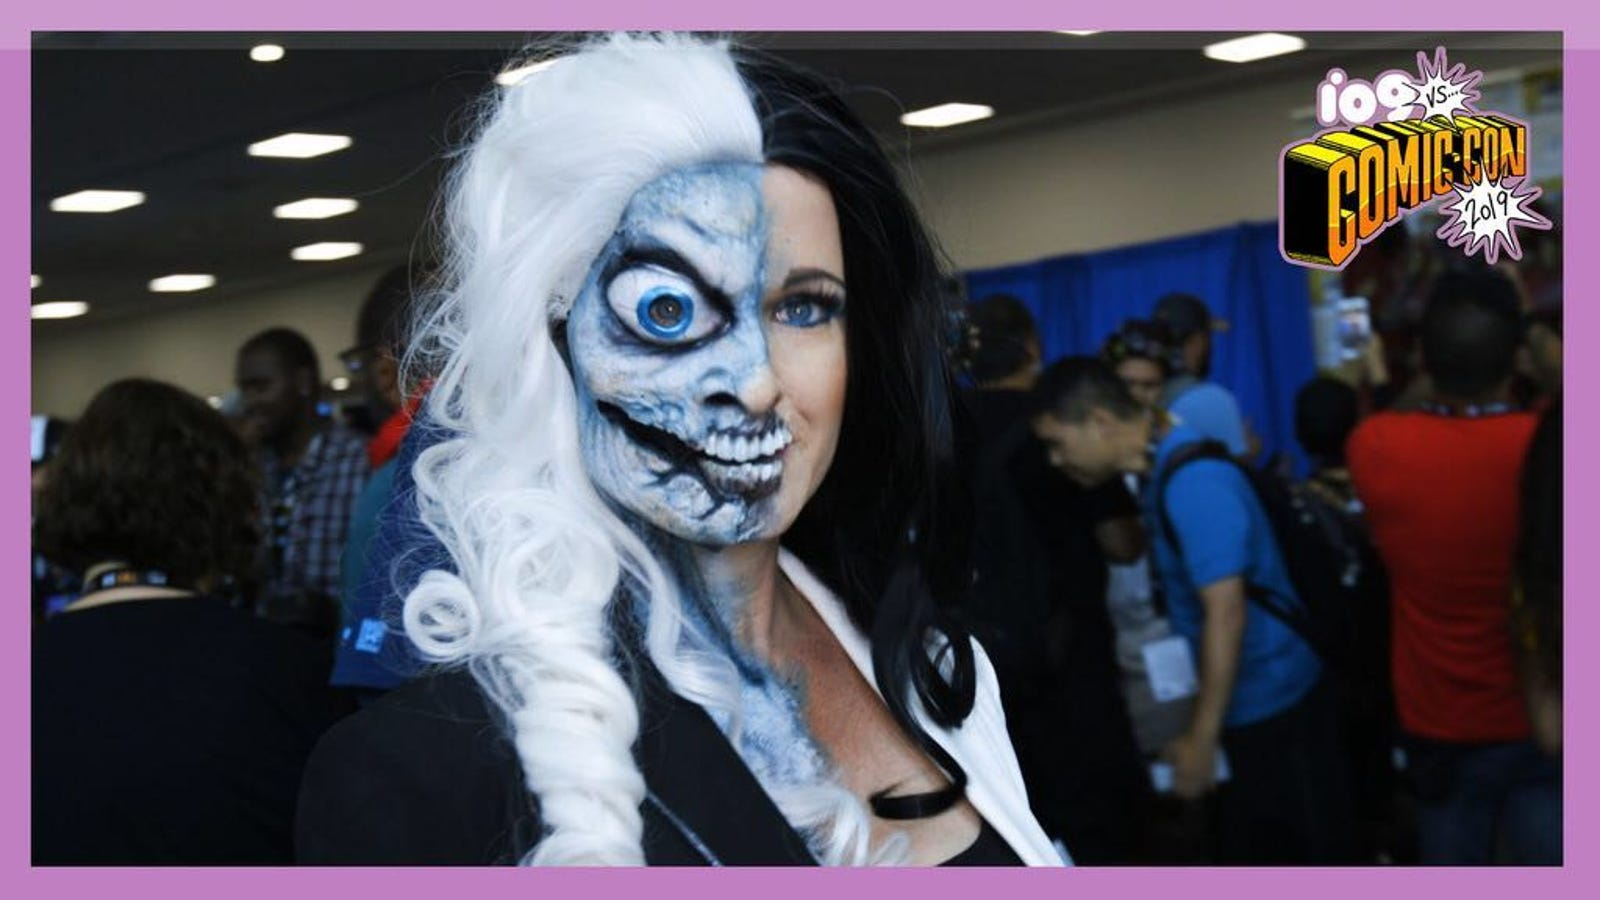 All the Marvelous Cosplay We Spotted at San Diego Comic-Con 2019, Day 2